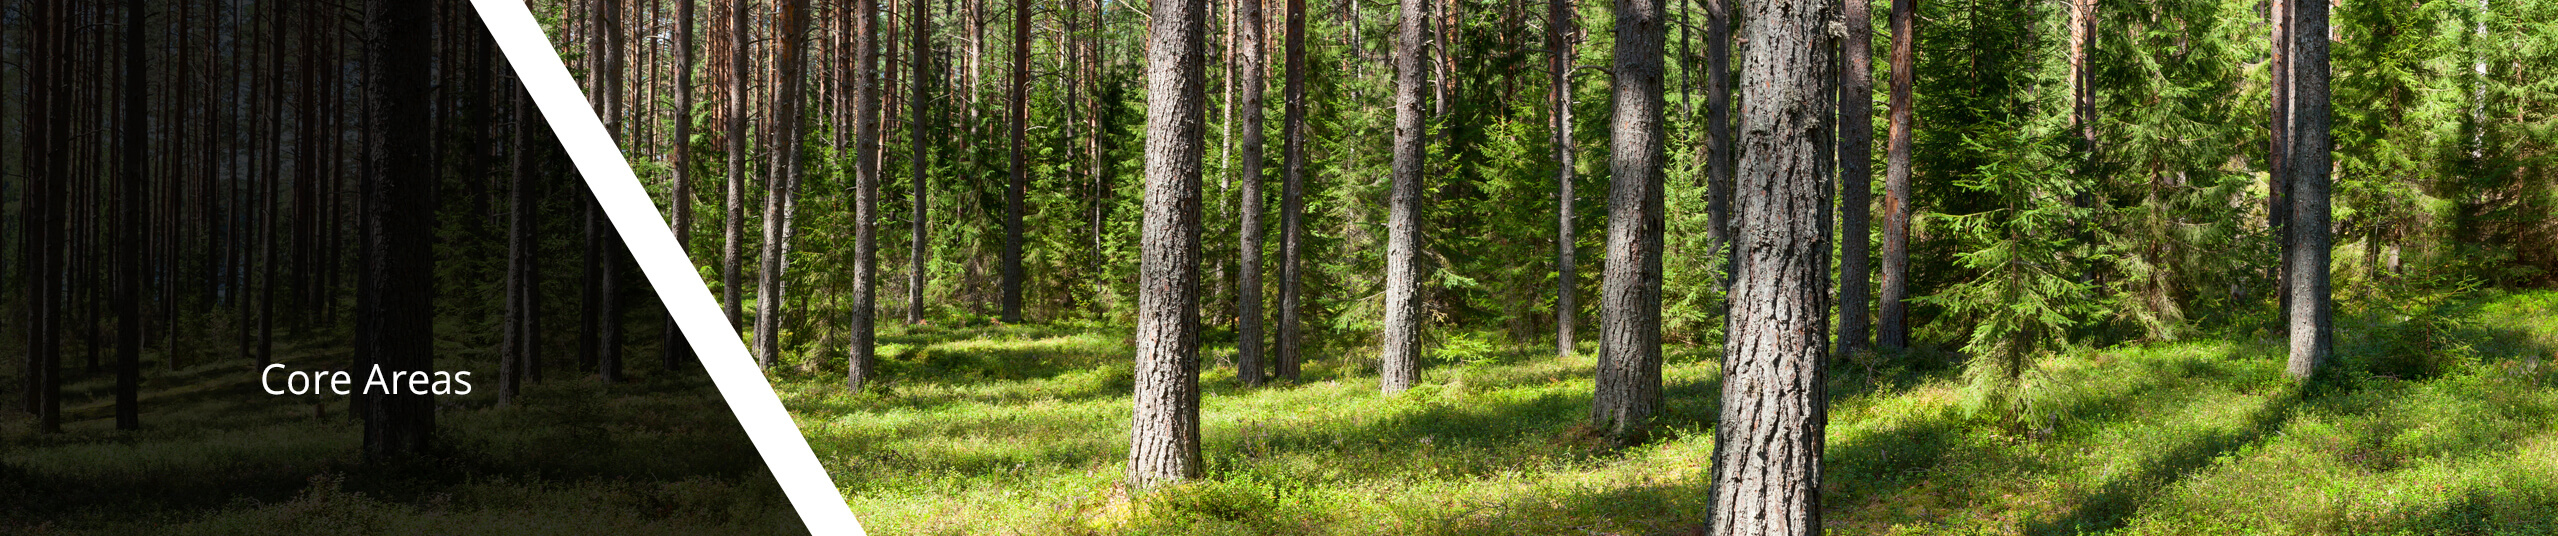 Summer forest panorama.